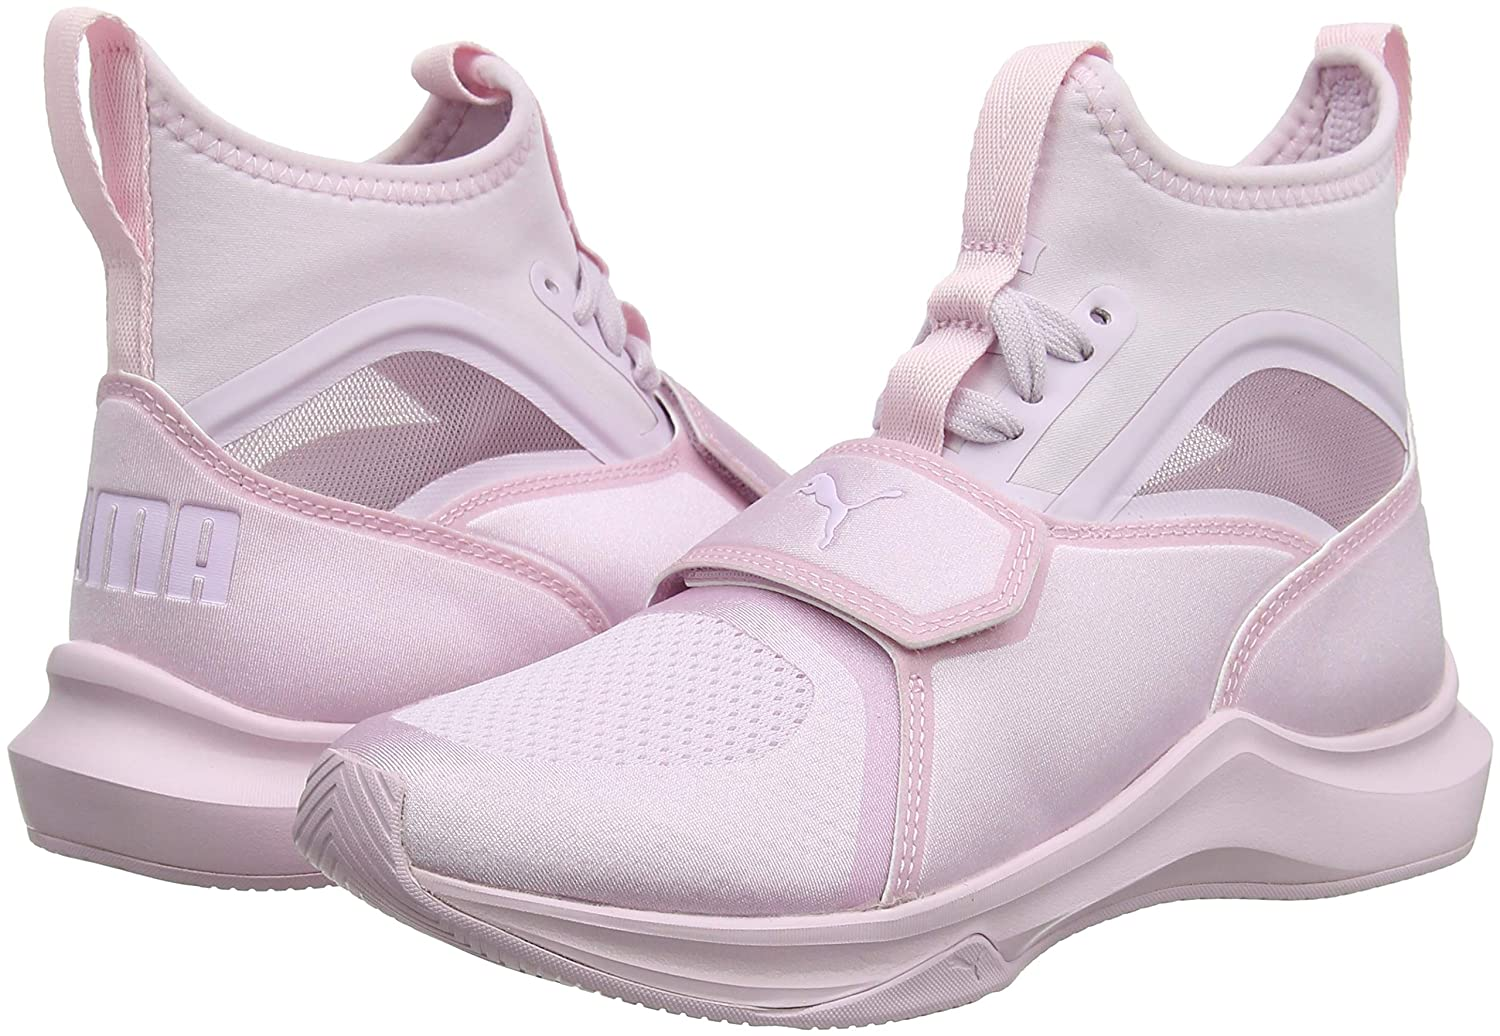 Puma Damen Phenom WN's Fitnessschuhe 11) Pink (Winsome Orchid 11) Fitnessschuhe eed308